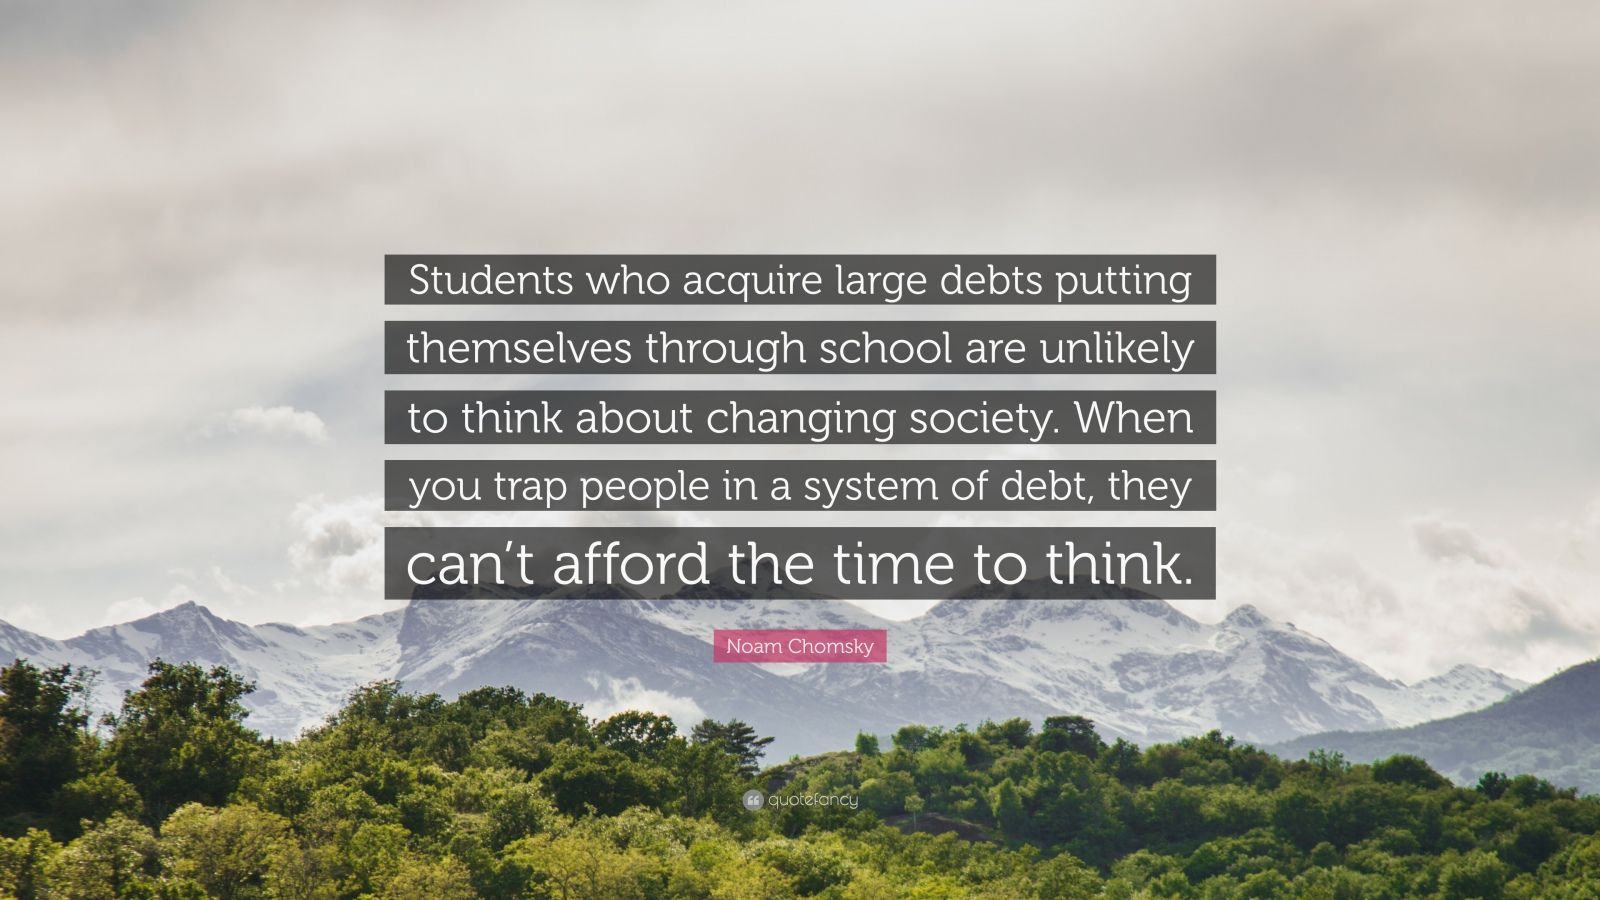 """Noam Chomsky Quote: """"Students who acquire large debts putting themselves through school are unlikely to think about changing society. When you trap people in a system of debt, they can't afford the time to think."""""""